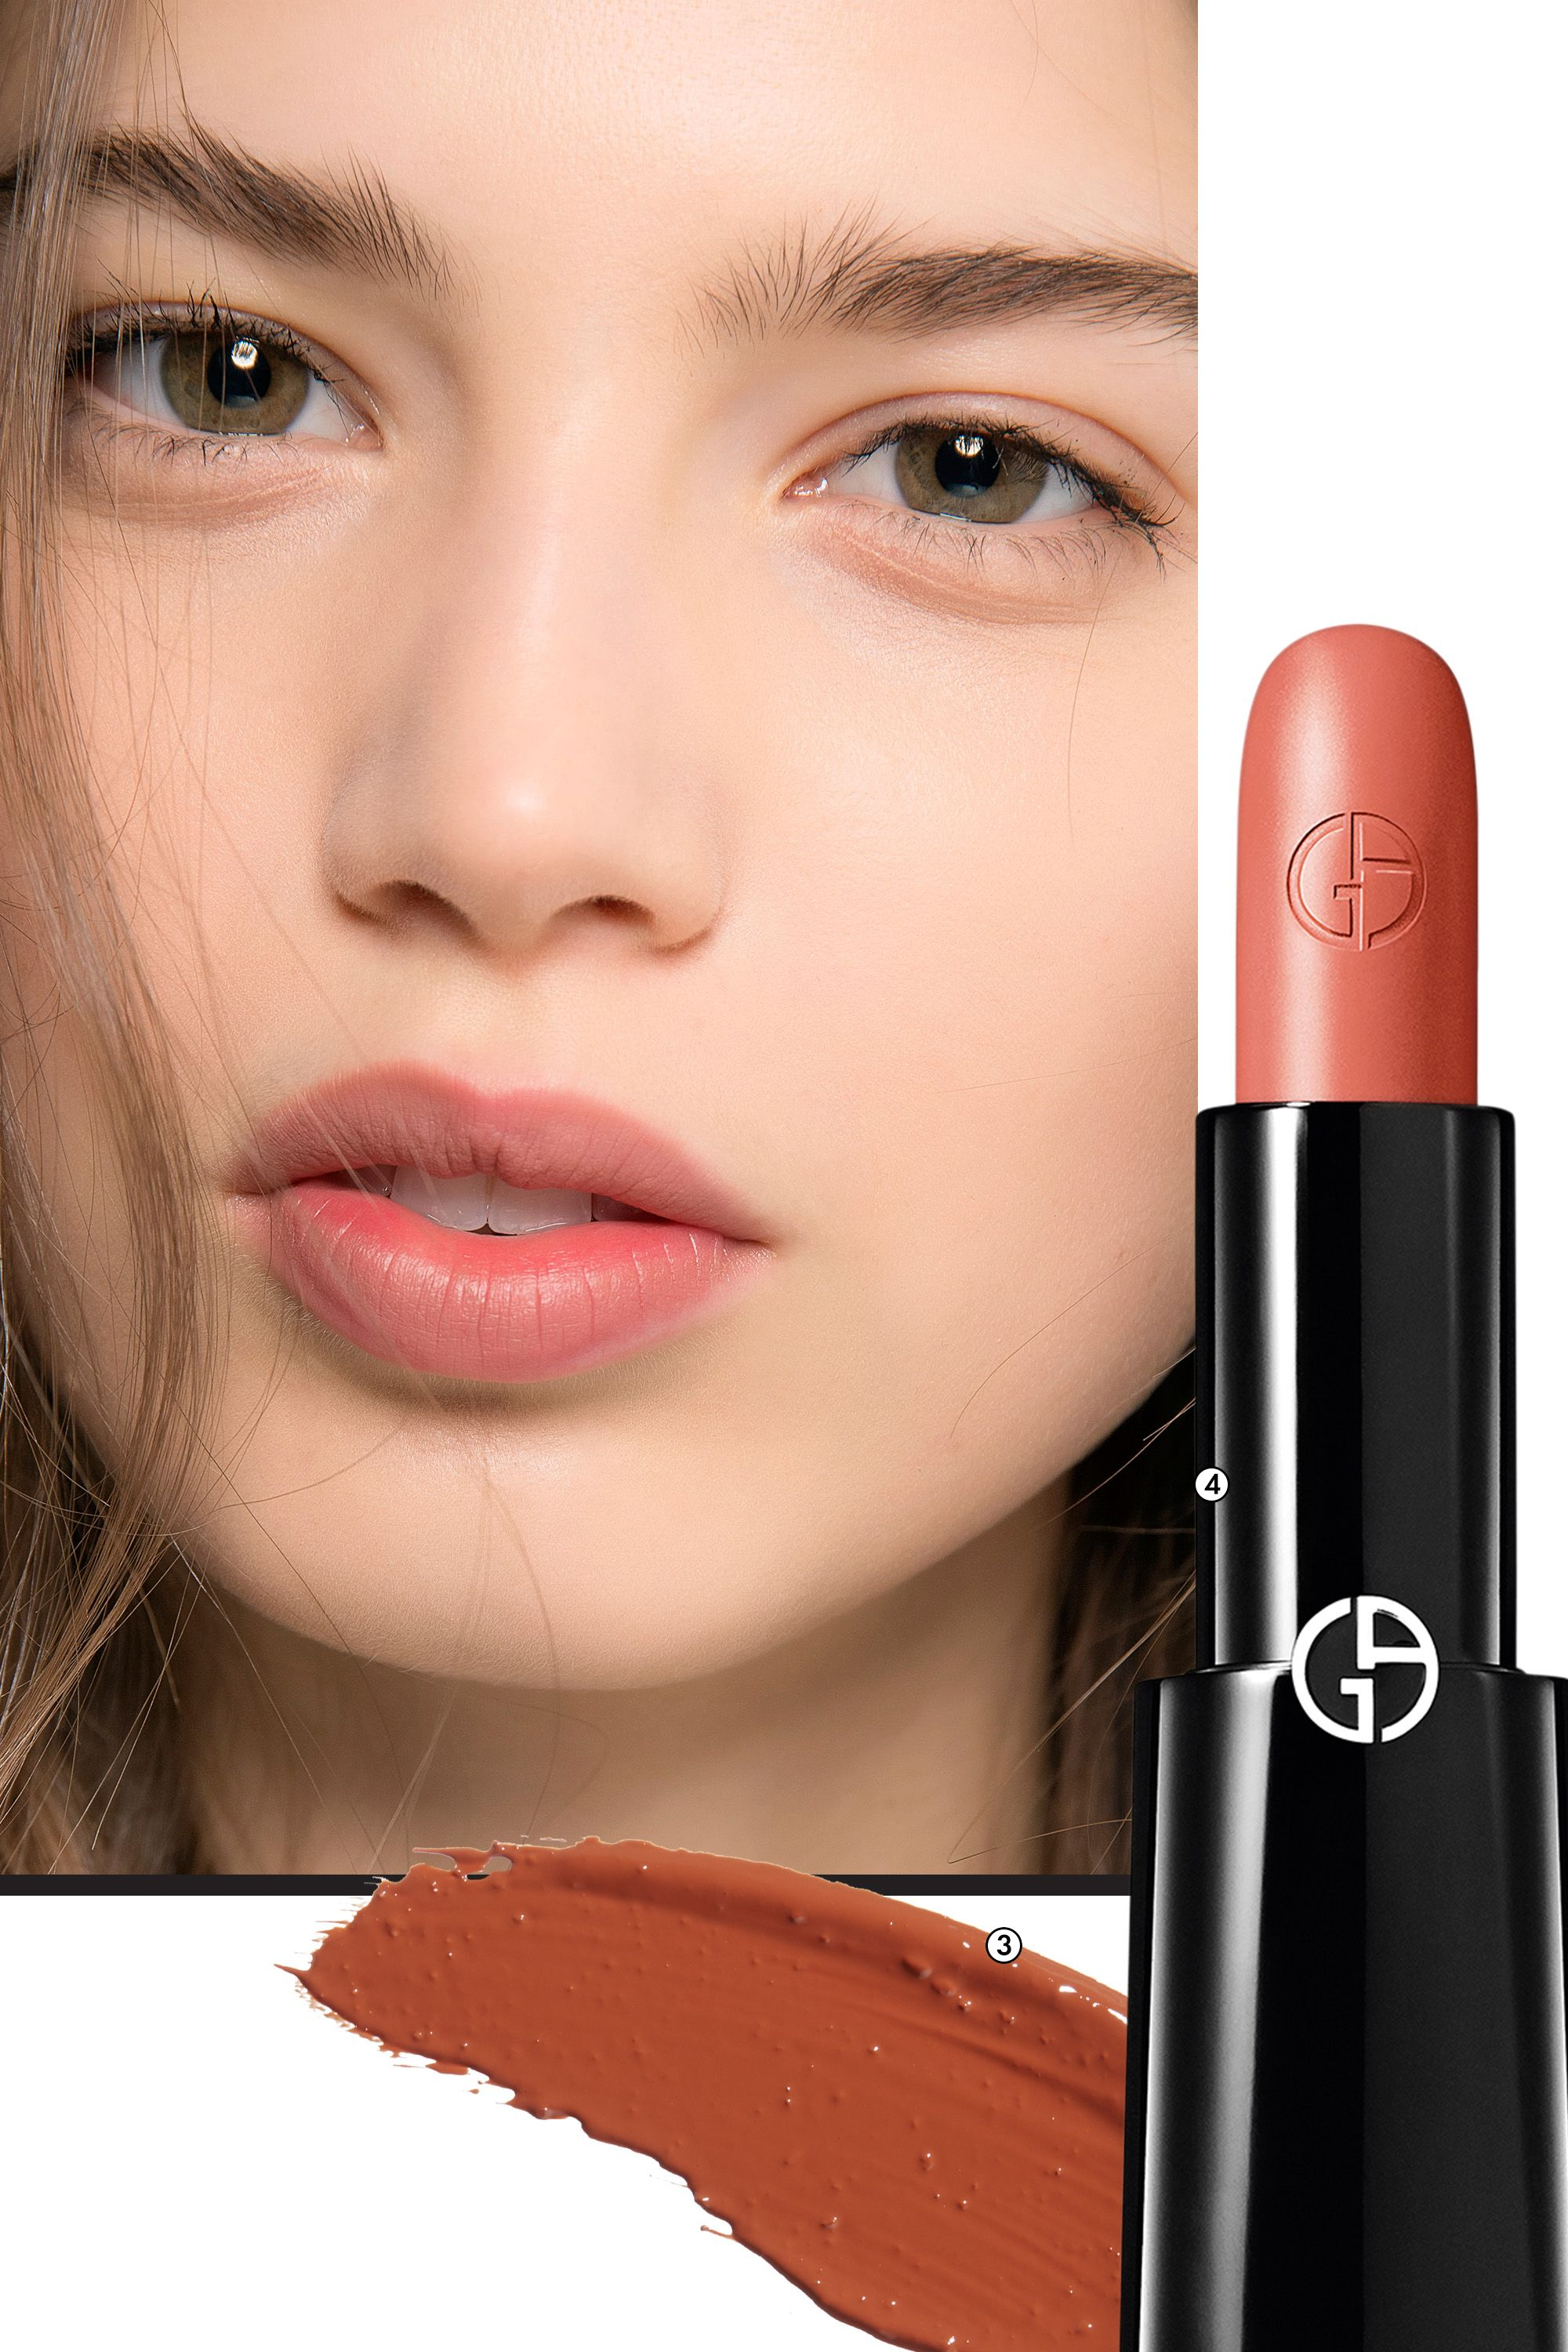 "<p>The Alexis Mabille show—in which models' mouths were shaded an intriguing brownish red, the unofficial lipstick color of the '90s—was basically one giant shout-out to the Nirvana era. For fair skin, makeup artist Lloyd Simmonds, using M.A.C Trend Forecast Fall 2017 lip palette (3), mixed a ""true beige"" with a hint of ""dusky rose."" To prevent beige undertones from skewing gray on darker complexions, Simmonds advises mixing a rose hue (we like Giorgio Armani Rouge d'Armani Lipstick in Bamboo (4)) with a raspberry shade.<span data-redactor-tag=""span"" data-verified=""redactor""></span></p><p>MAKE WAVES:&nbsp&#x3B;<em data-redactor-tag=""em"">Blast hair with a tousle- accentuating finishing spray, such as Redken Wind Blown, before curling or weaving a (mussed) braid.</em></p>"